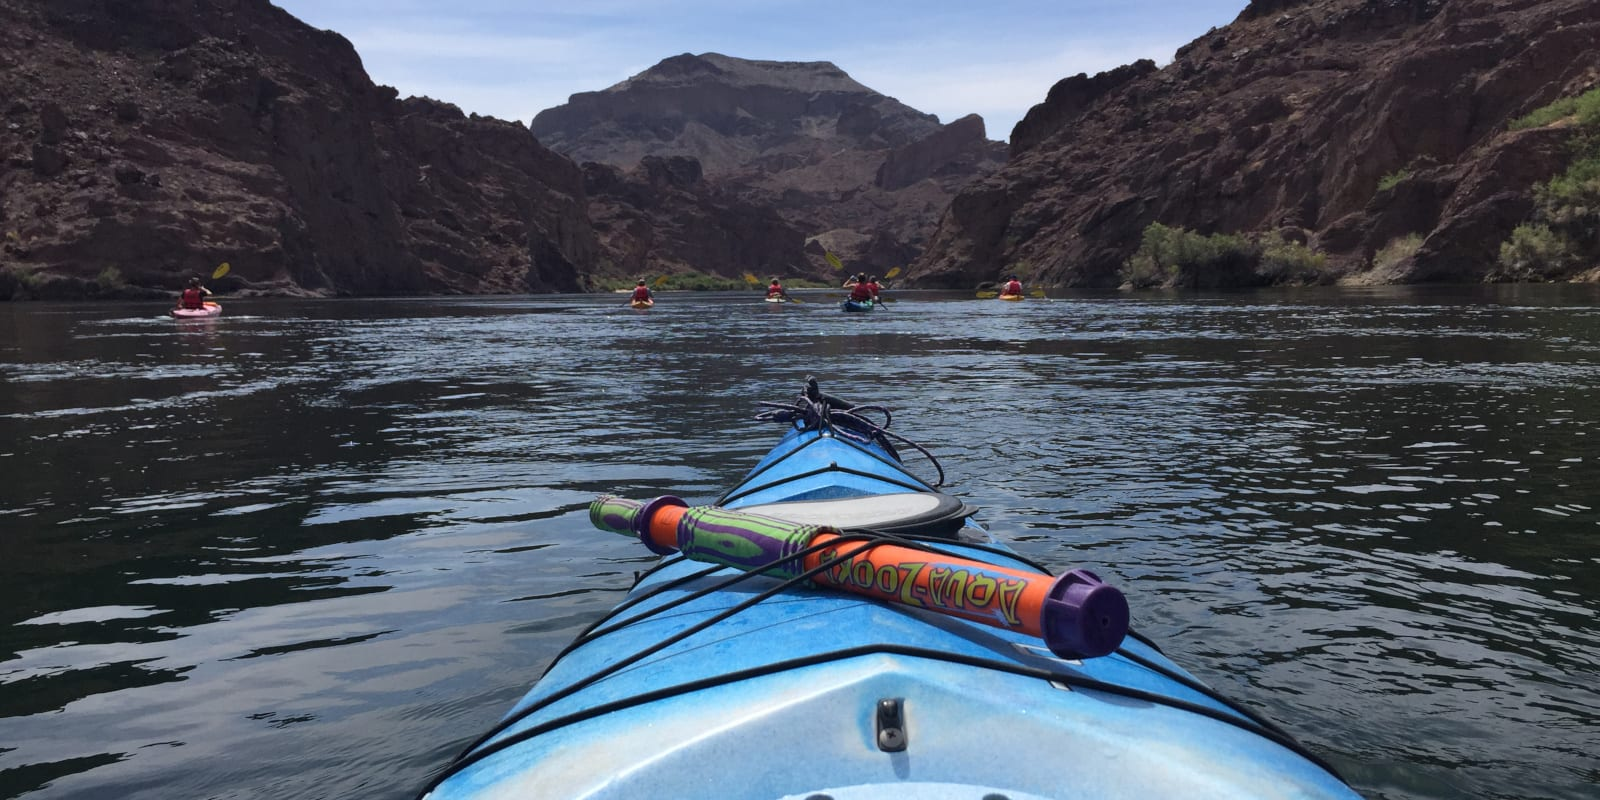 Colorado River Kayaking Nevada